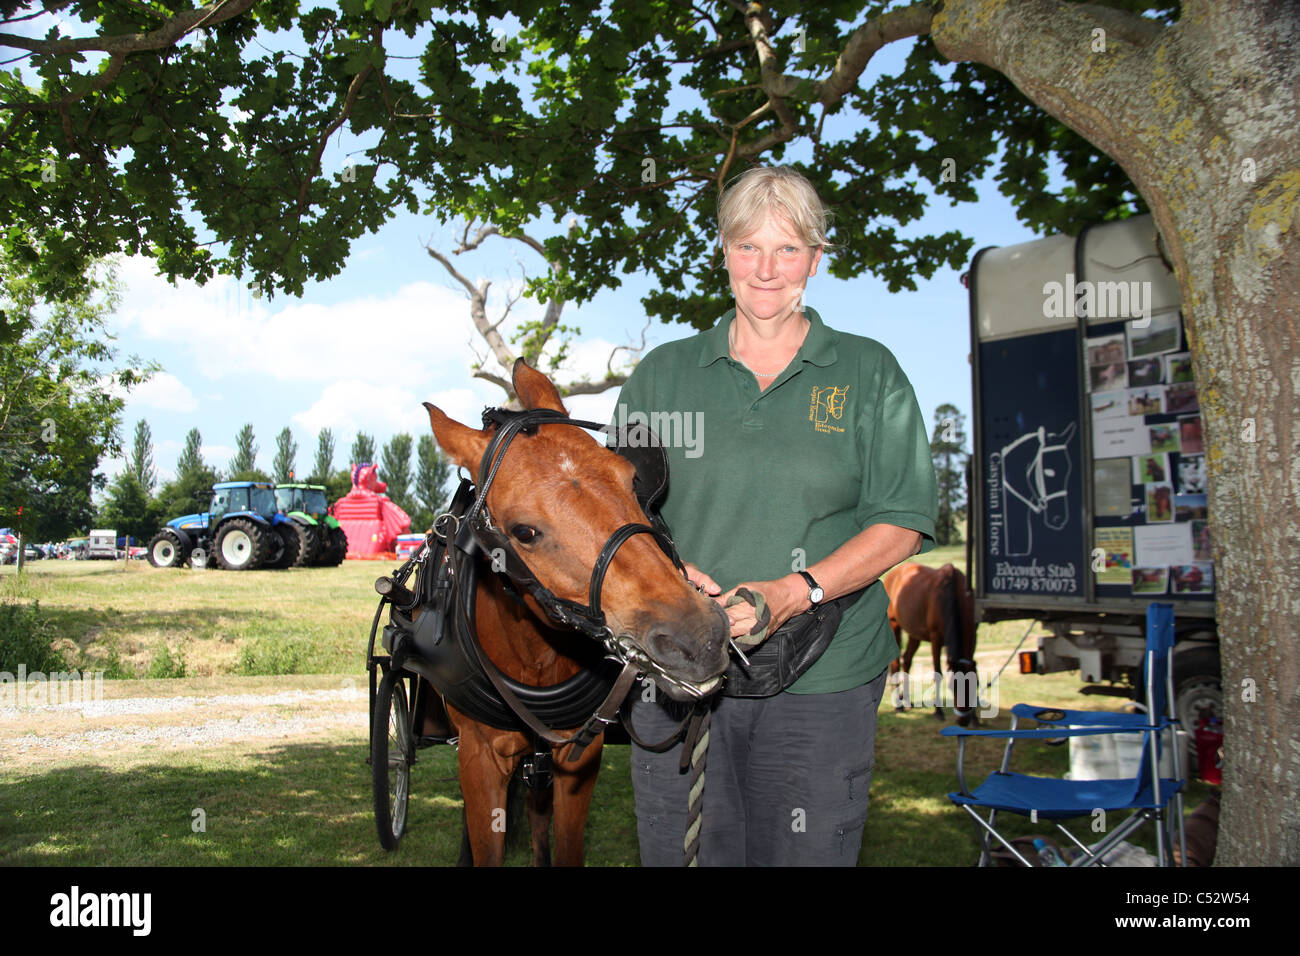 A Caspian Horse and trap giving rides at an English country show in Cannington Somerset England UK - Stock Image